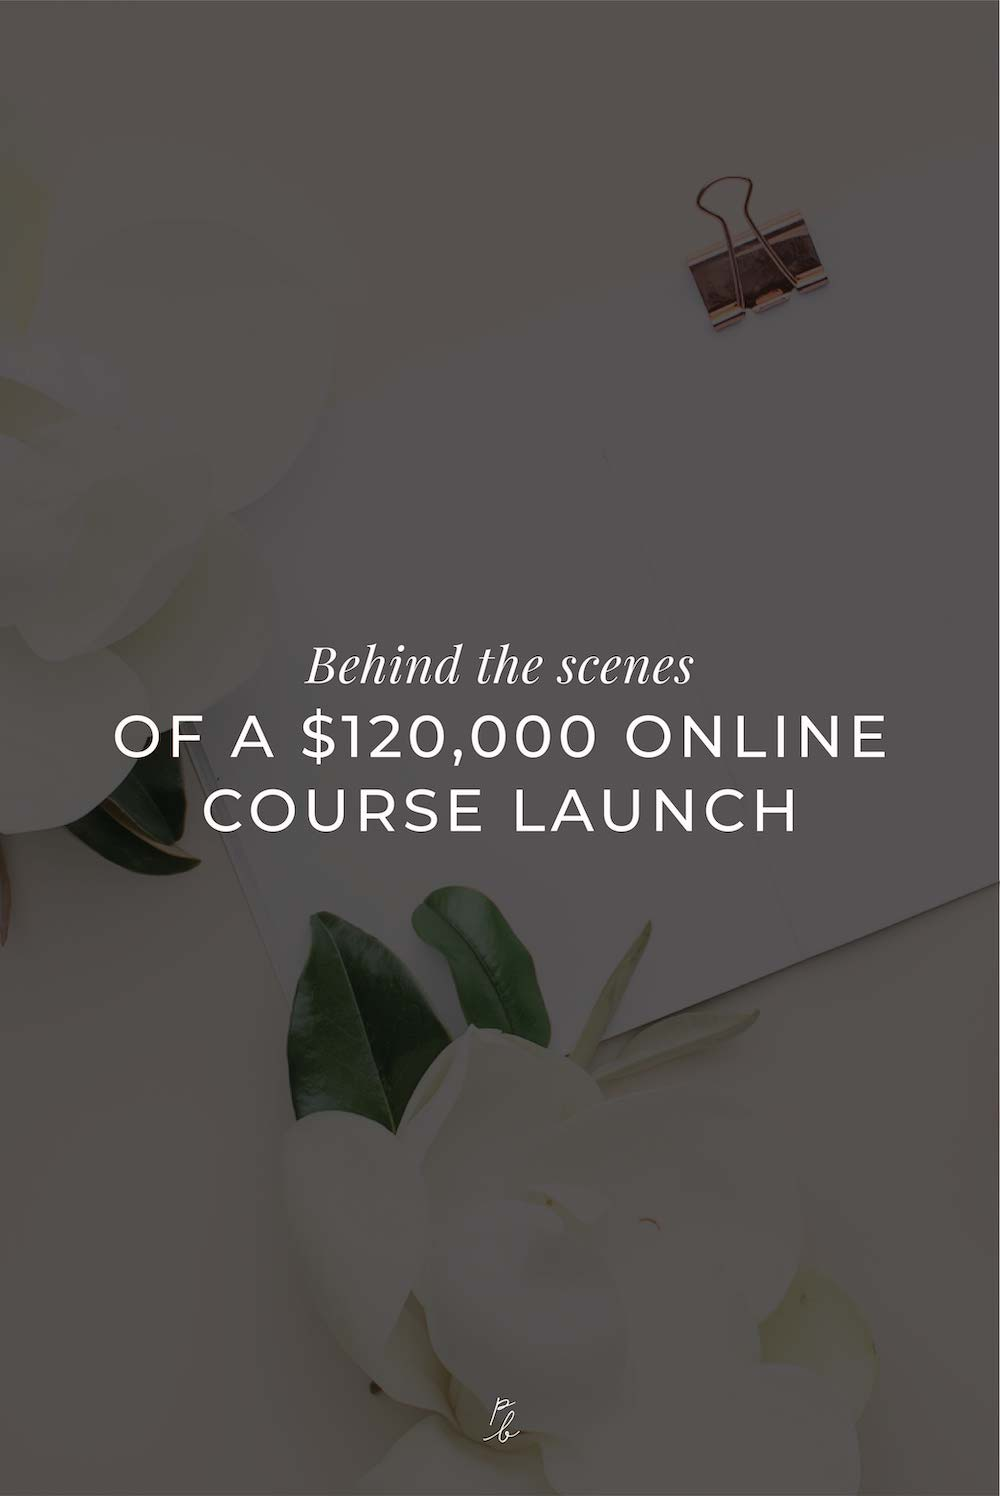 Behind the scenes of a $120000 online course launch